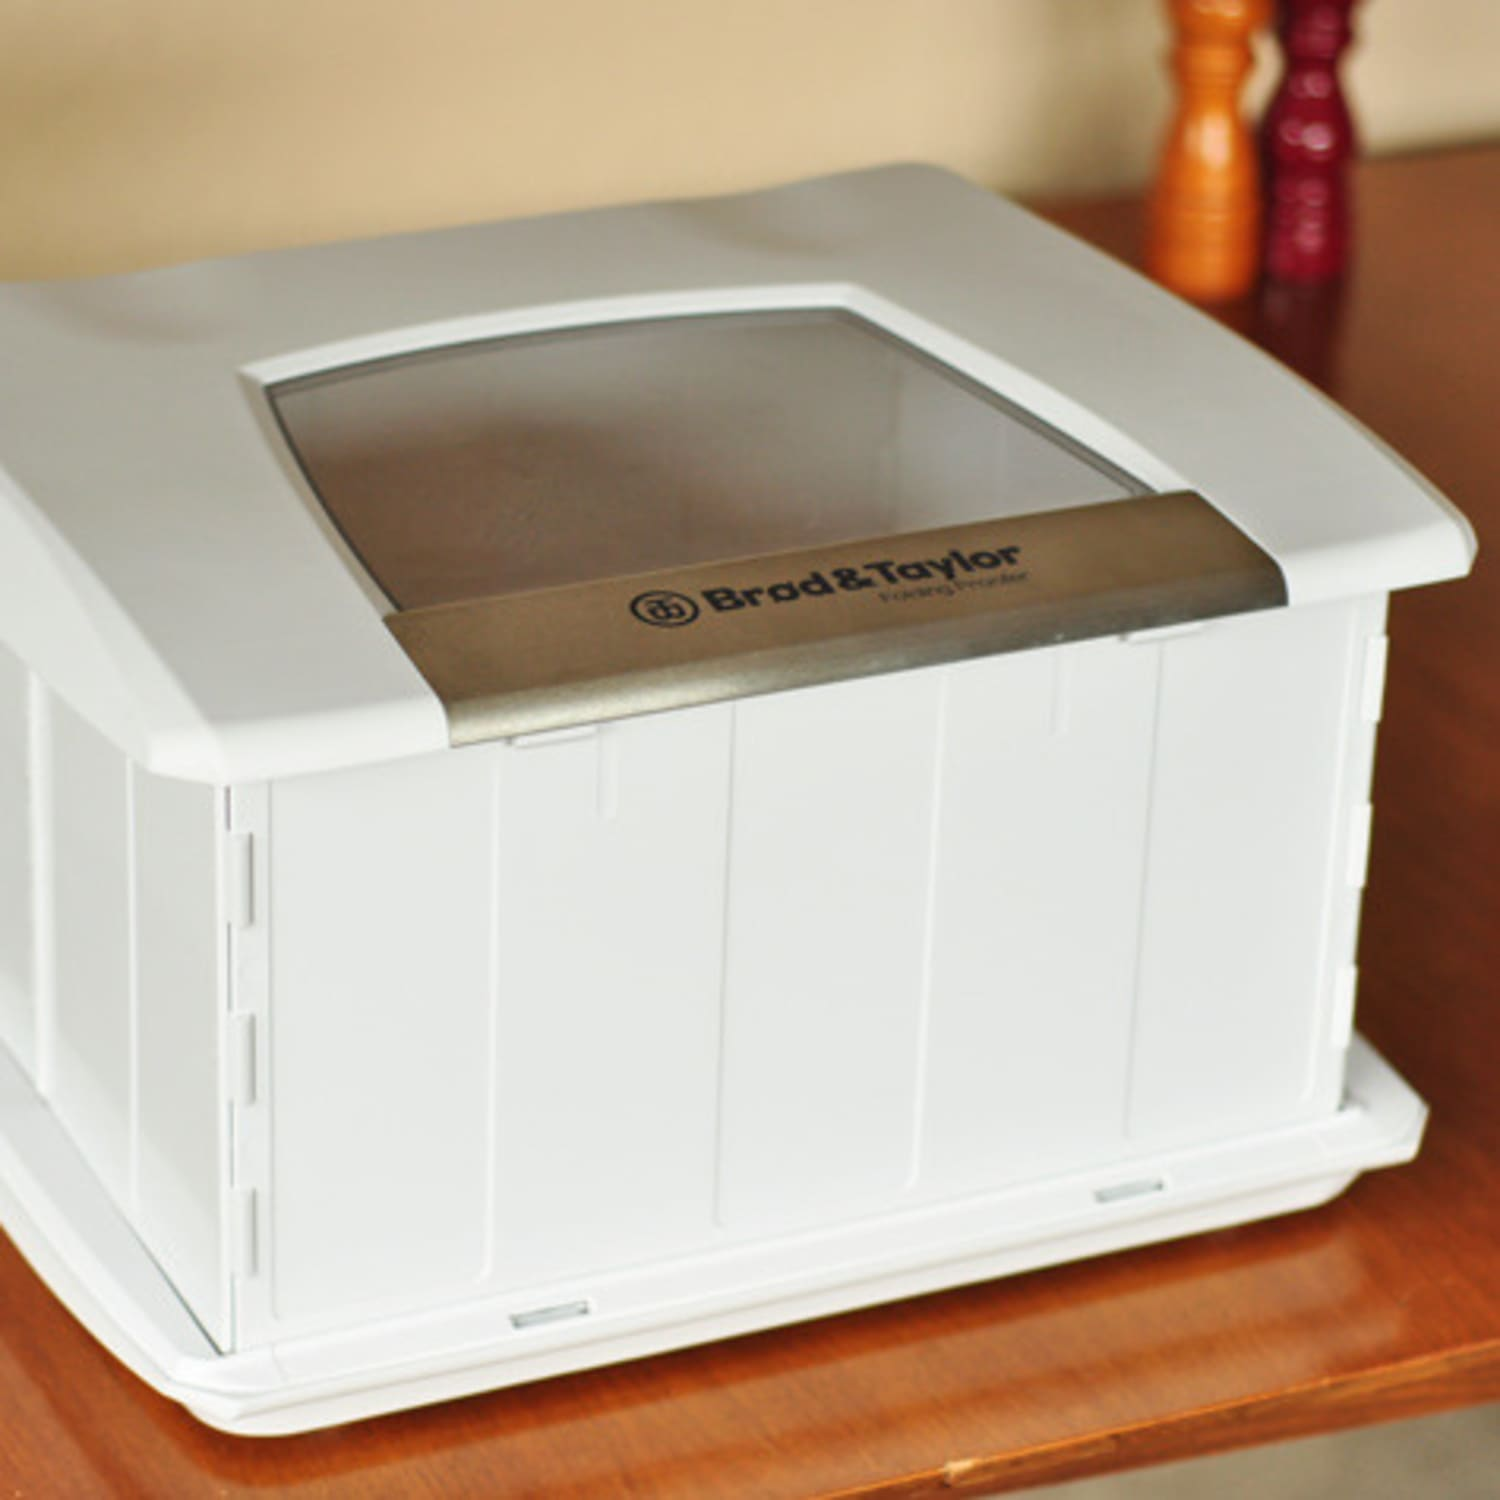 A Home Bread Proofer The Brod Taylor Folding Proofer Product Review Kitchn